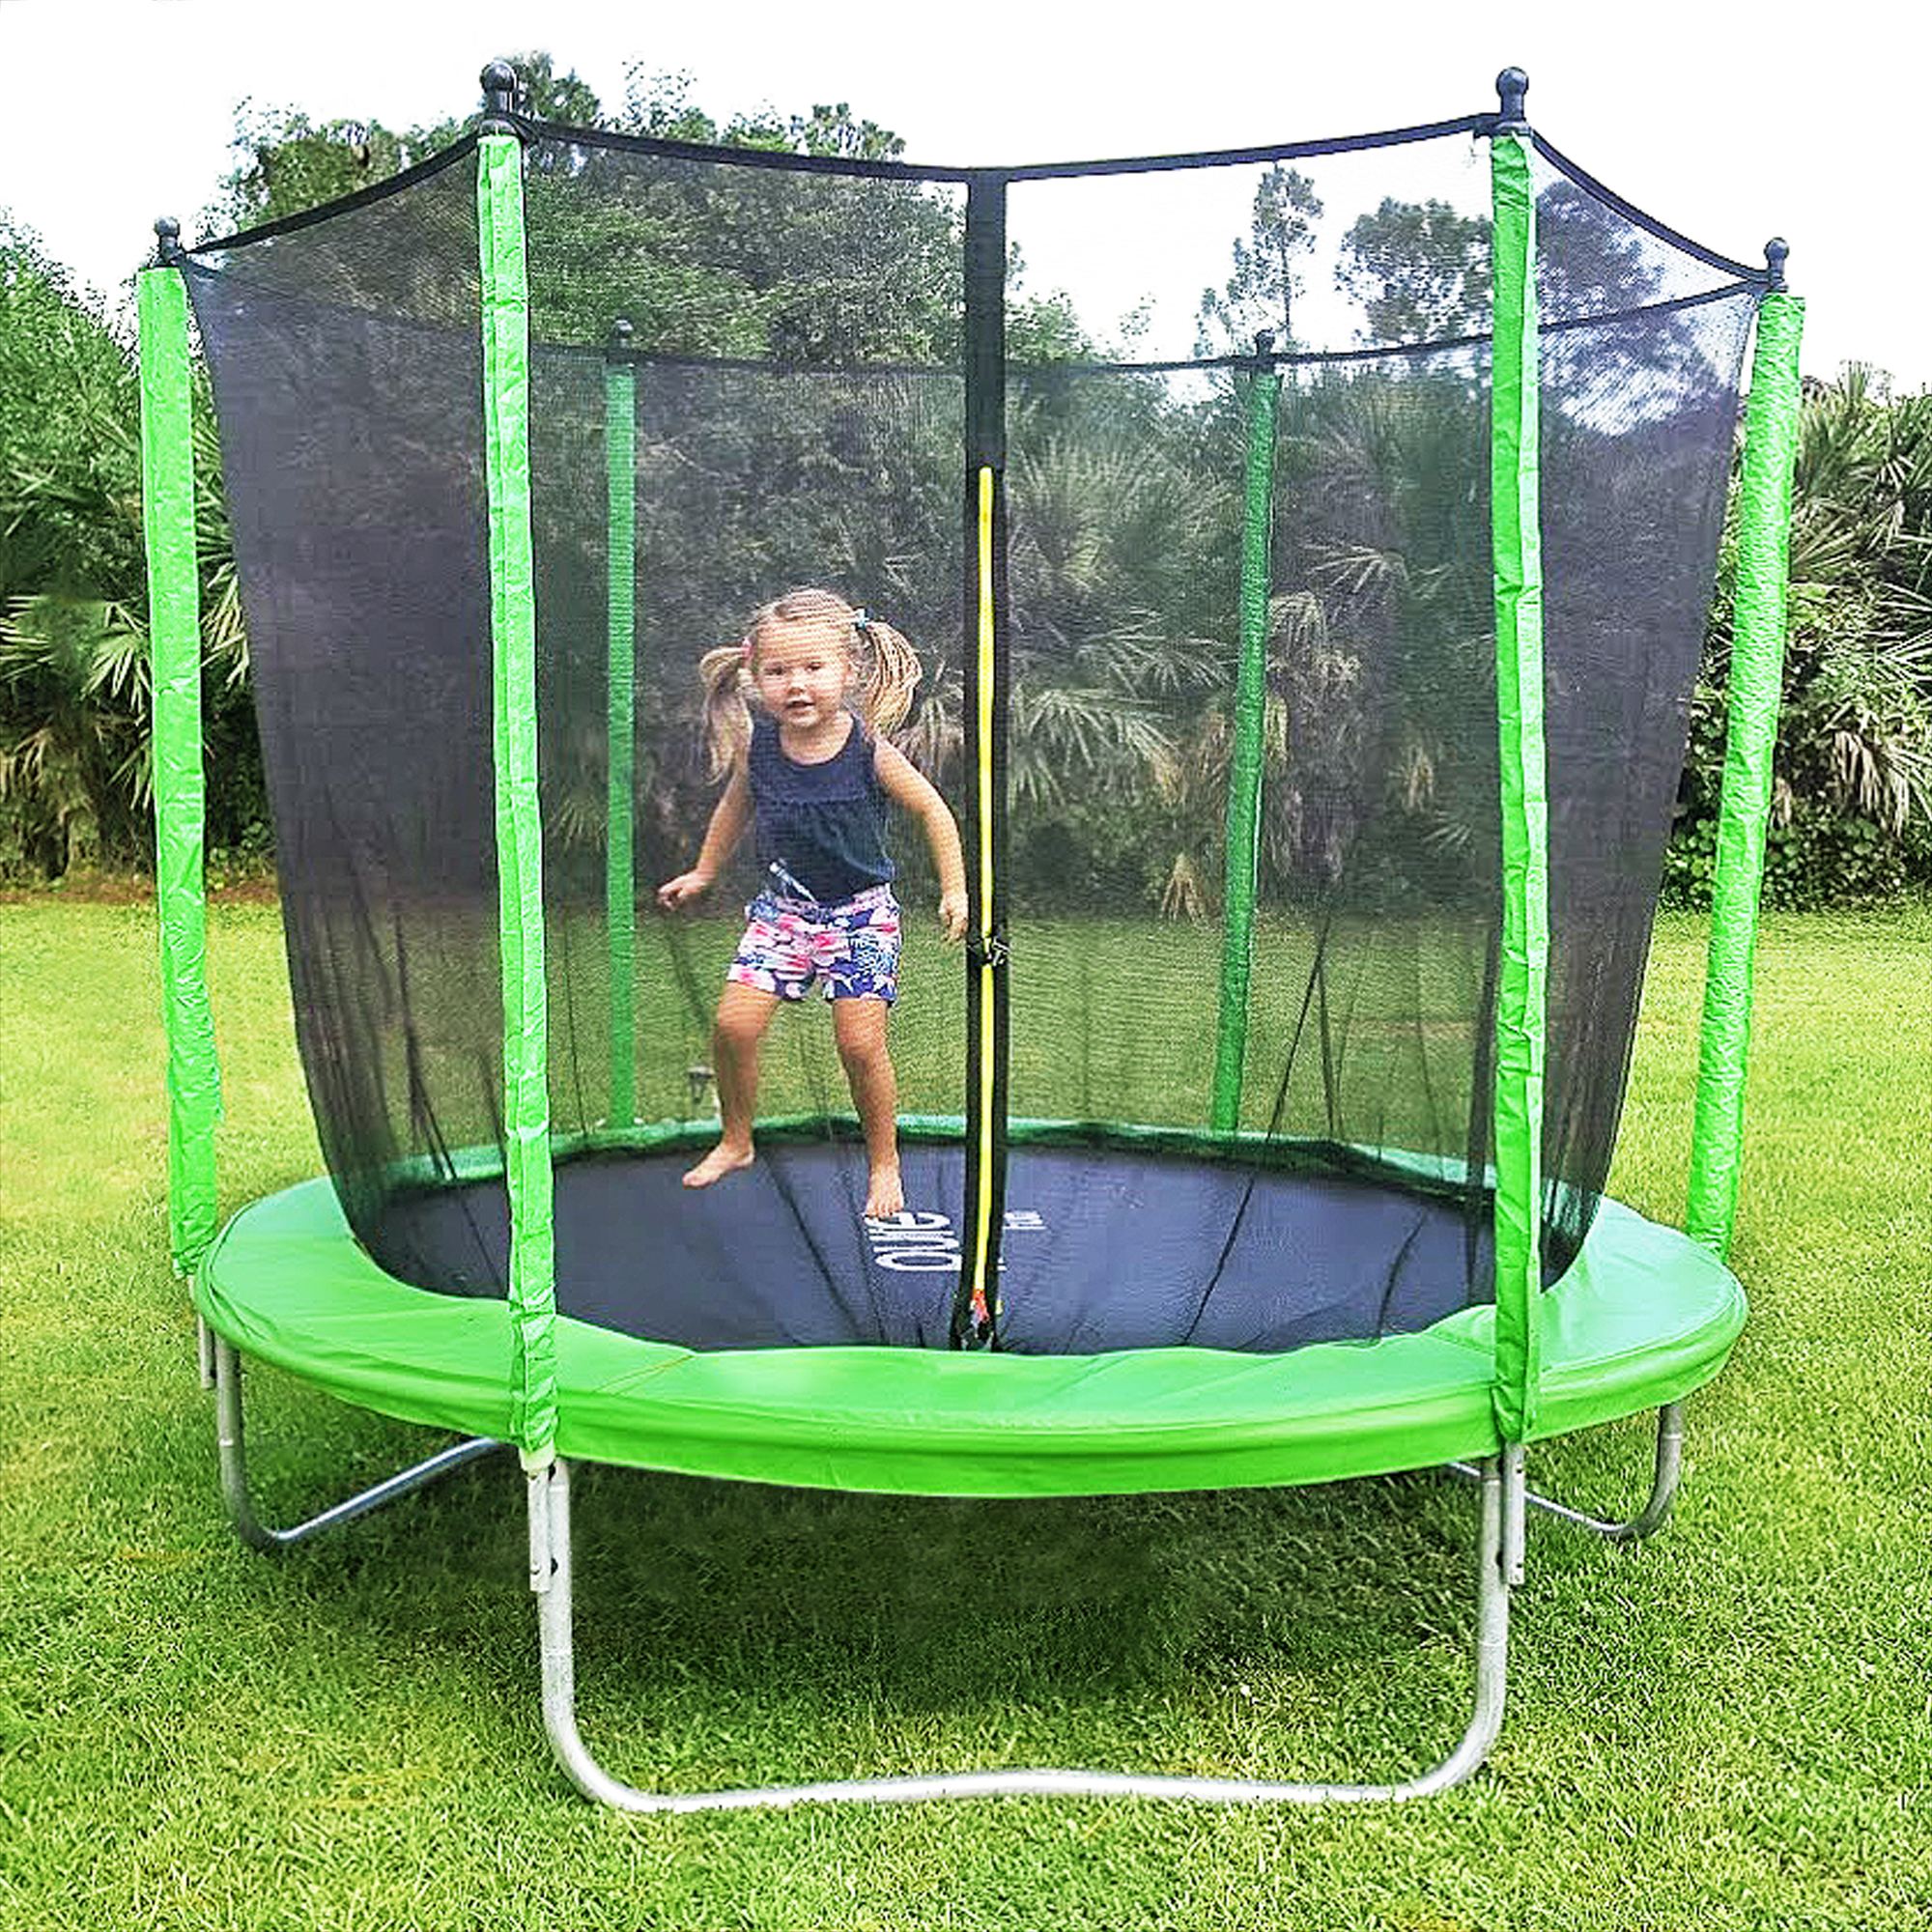 Pure-Fun-9308TS-8ft-Trampoline+Enclosure-Lifestyle